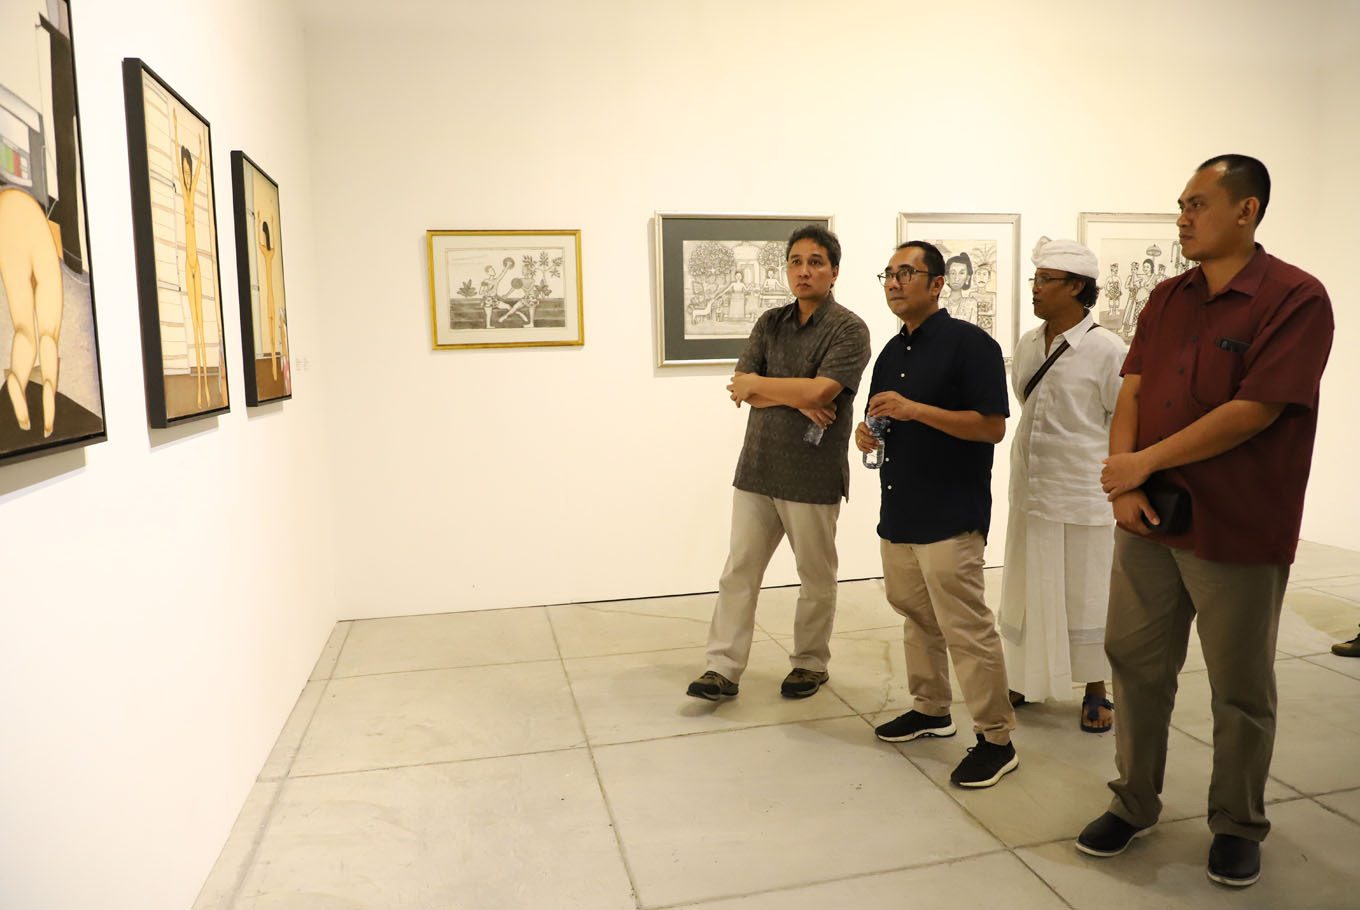 Balinese Masters opening featuring Hilmar Farid, curator Rifky Effendy and artist I Wayan Sika.